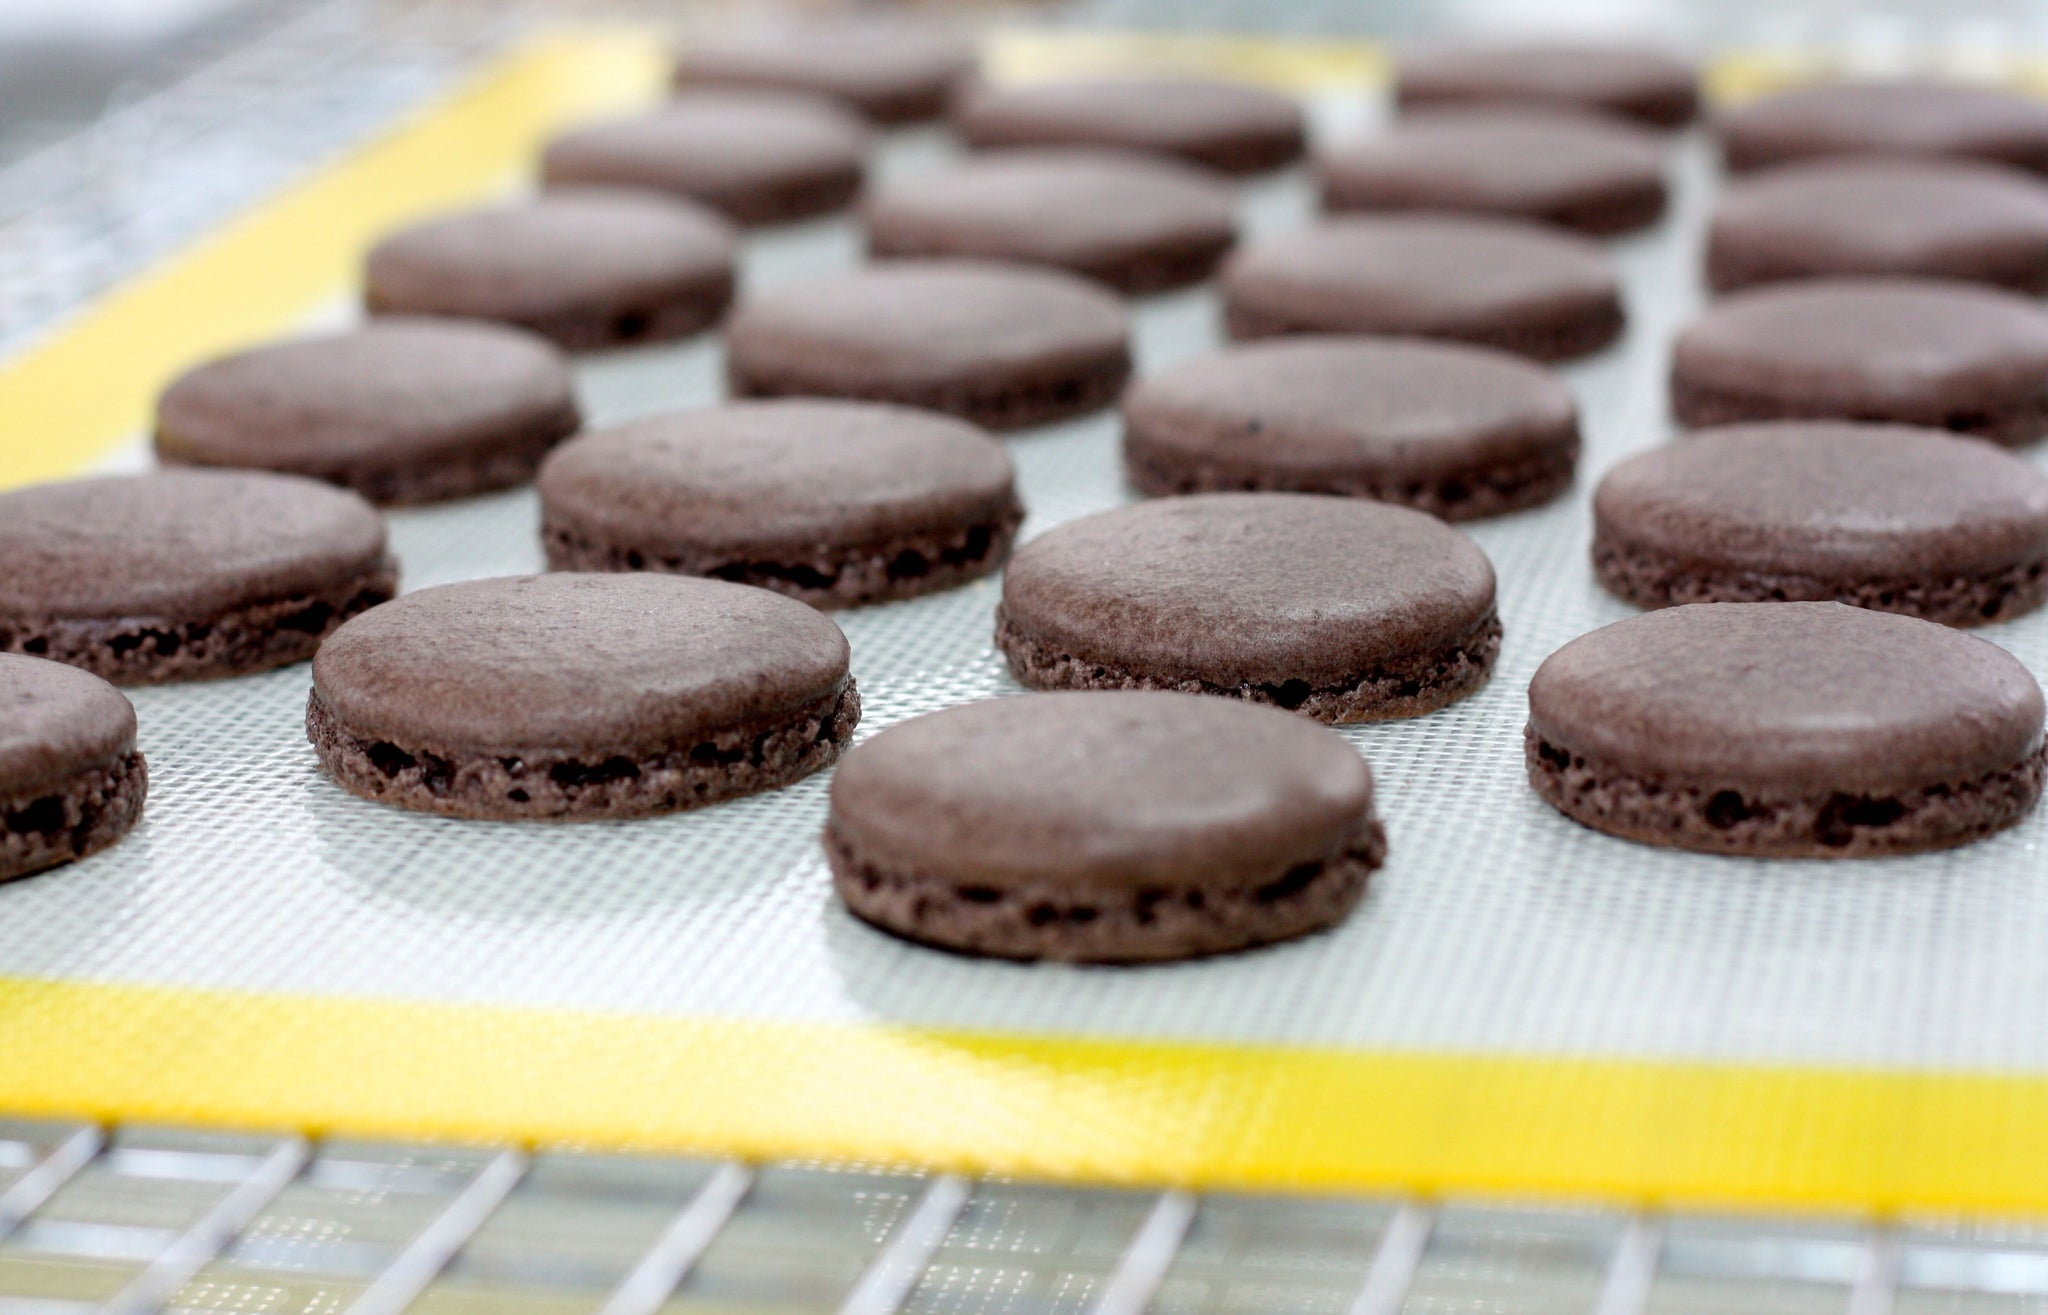 Chocolate-Covered Caramel Pecan Macarons